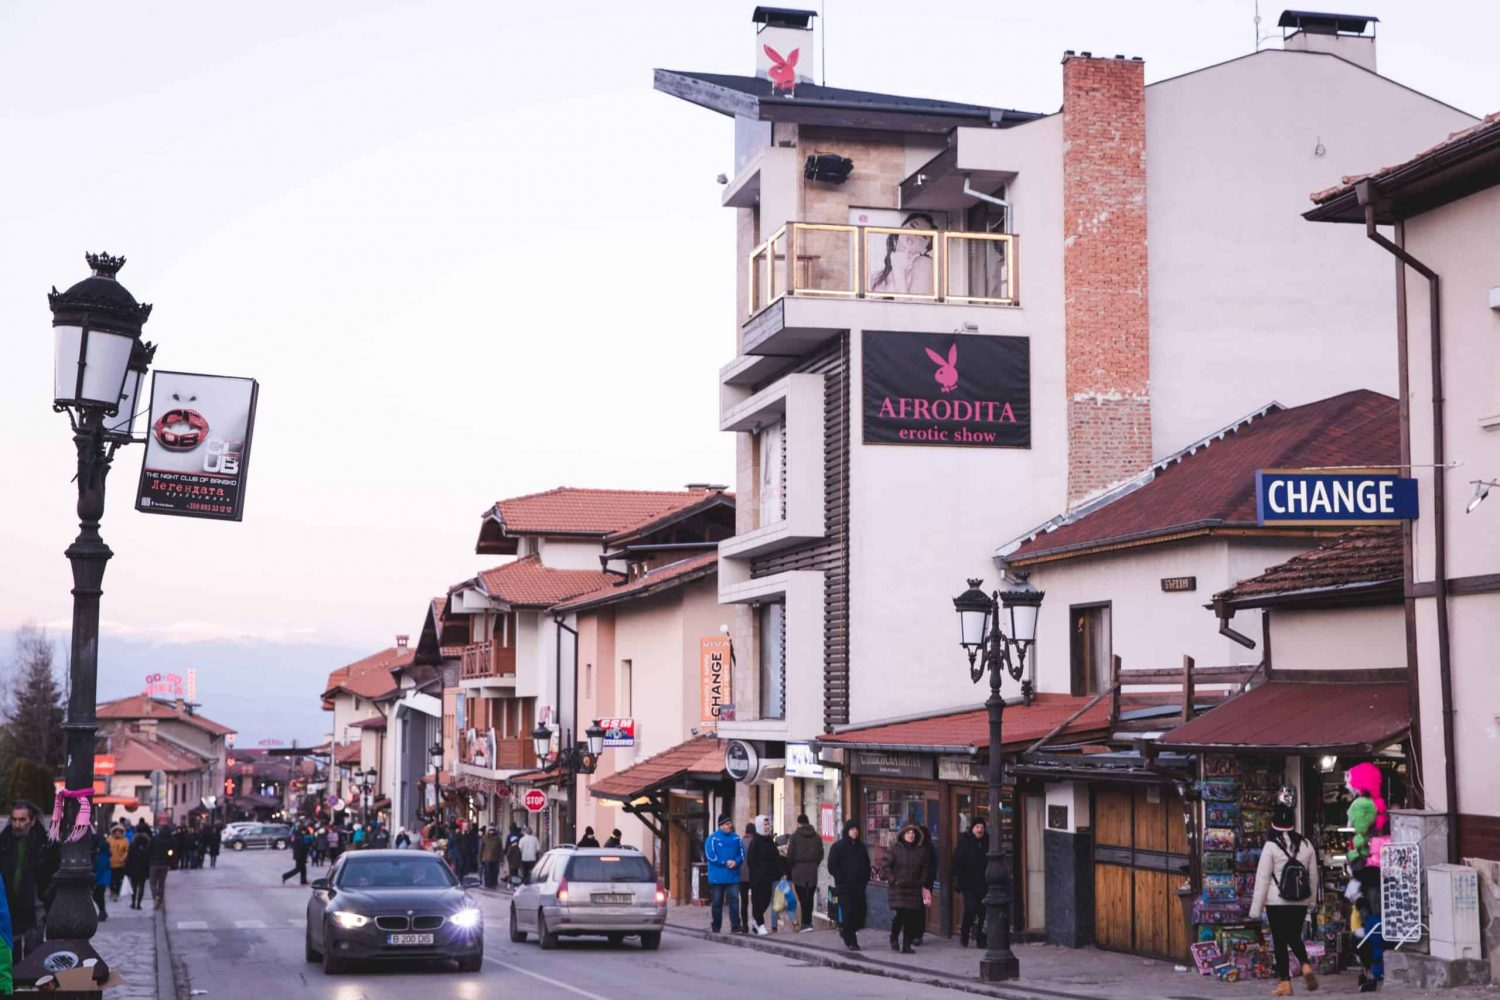 The top of Pirin Street in Bansko, Bulgaria.